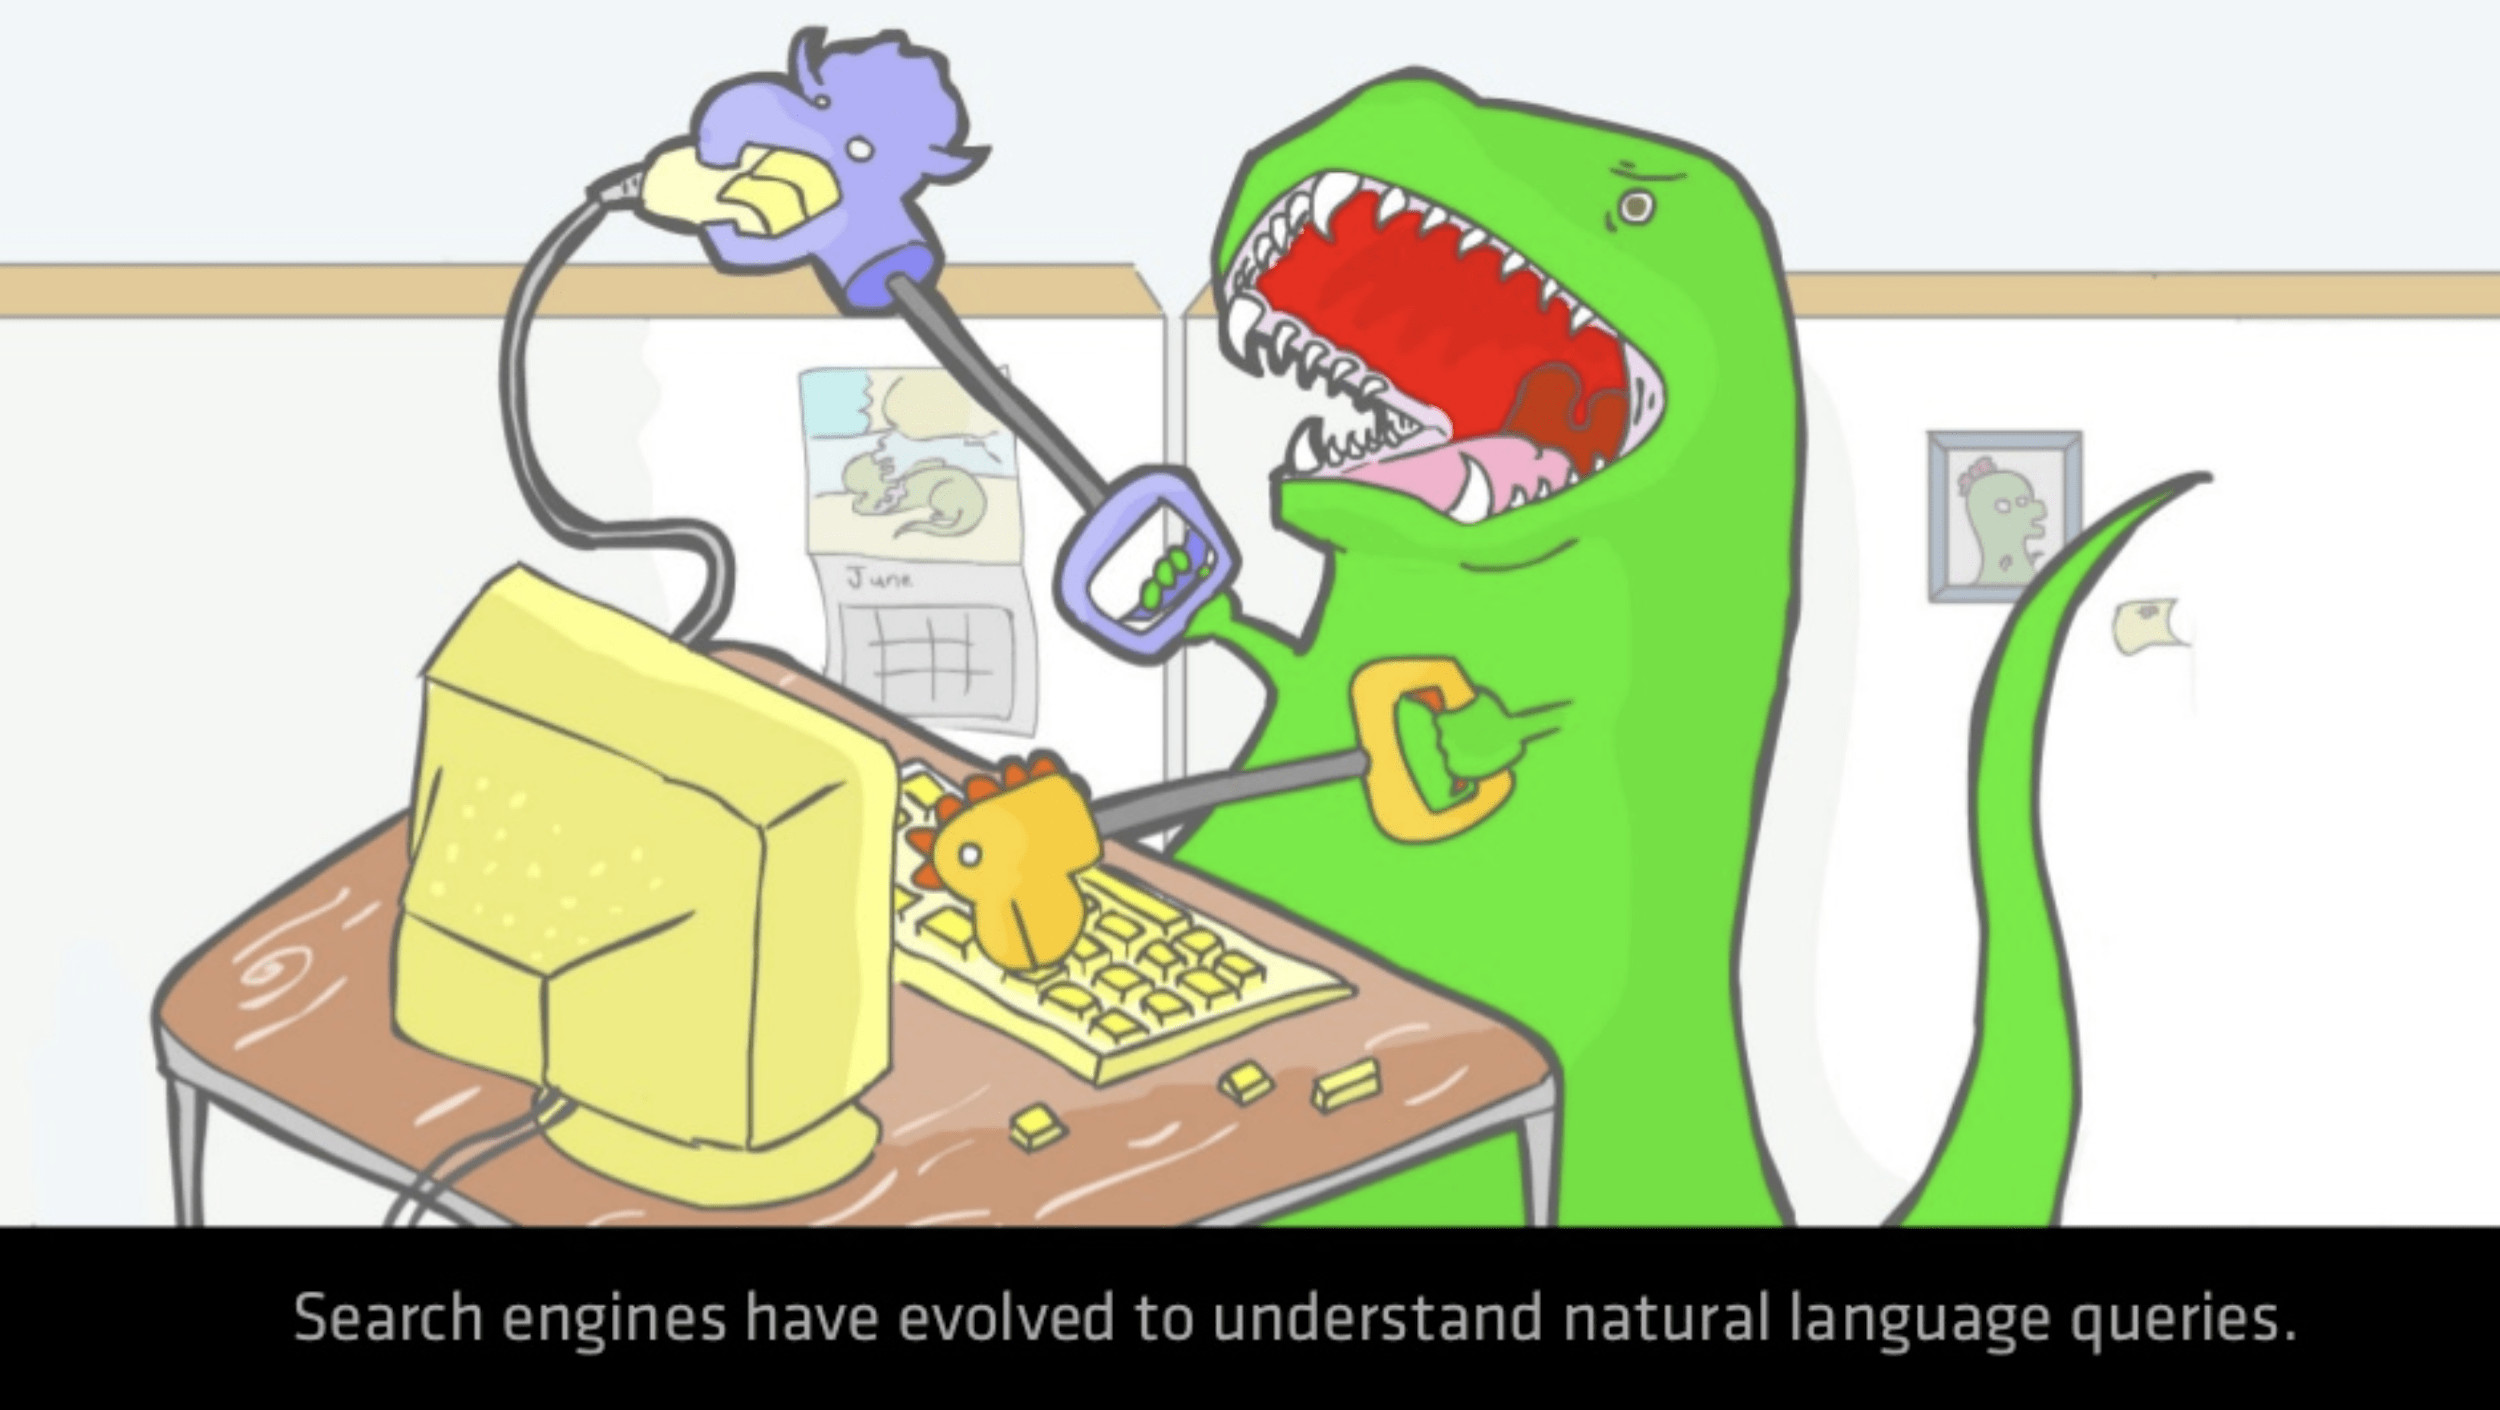 Search engines have evolved to understand natural language queries.